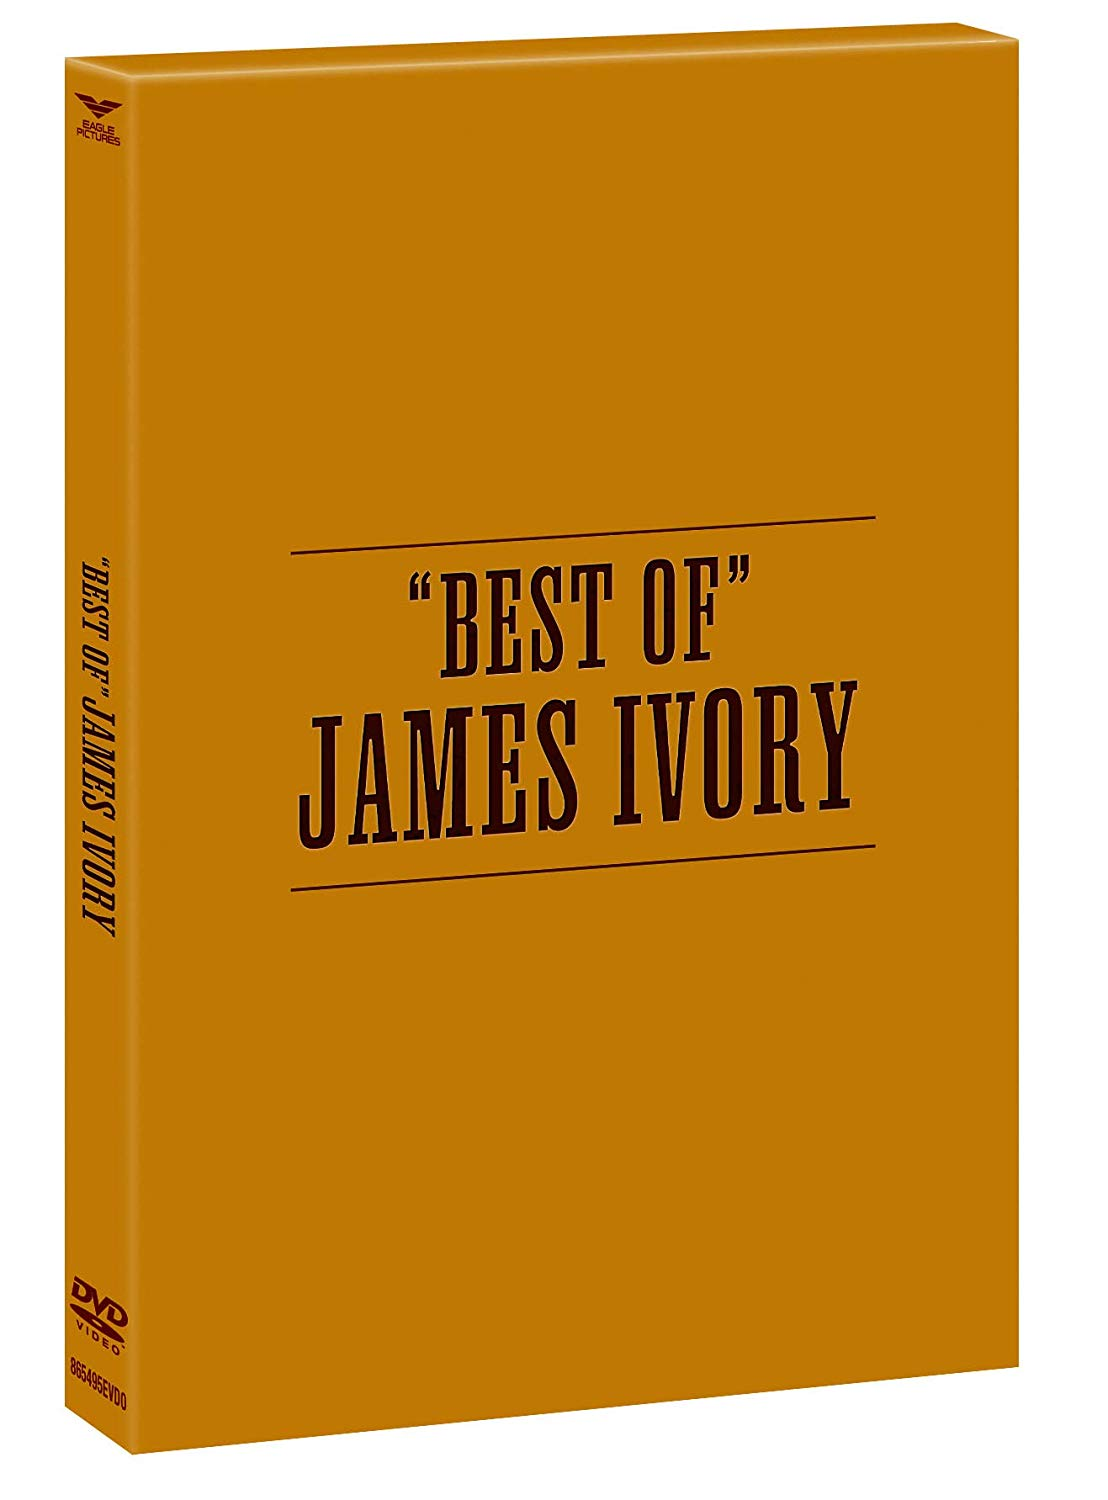 COF.JAMES IVORY COLLECTION (4 DVD) (DVD)